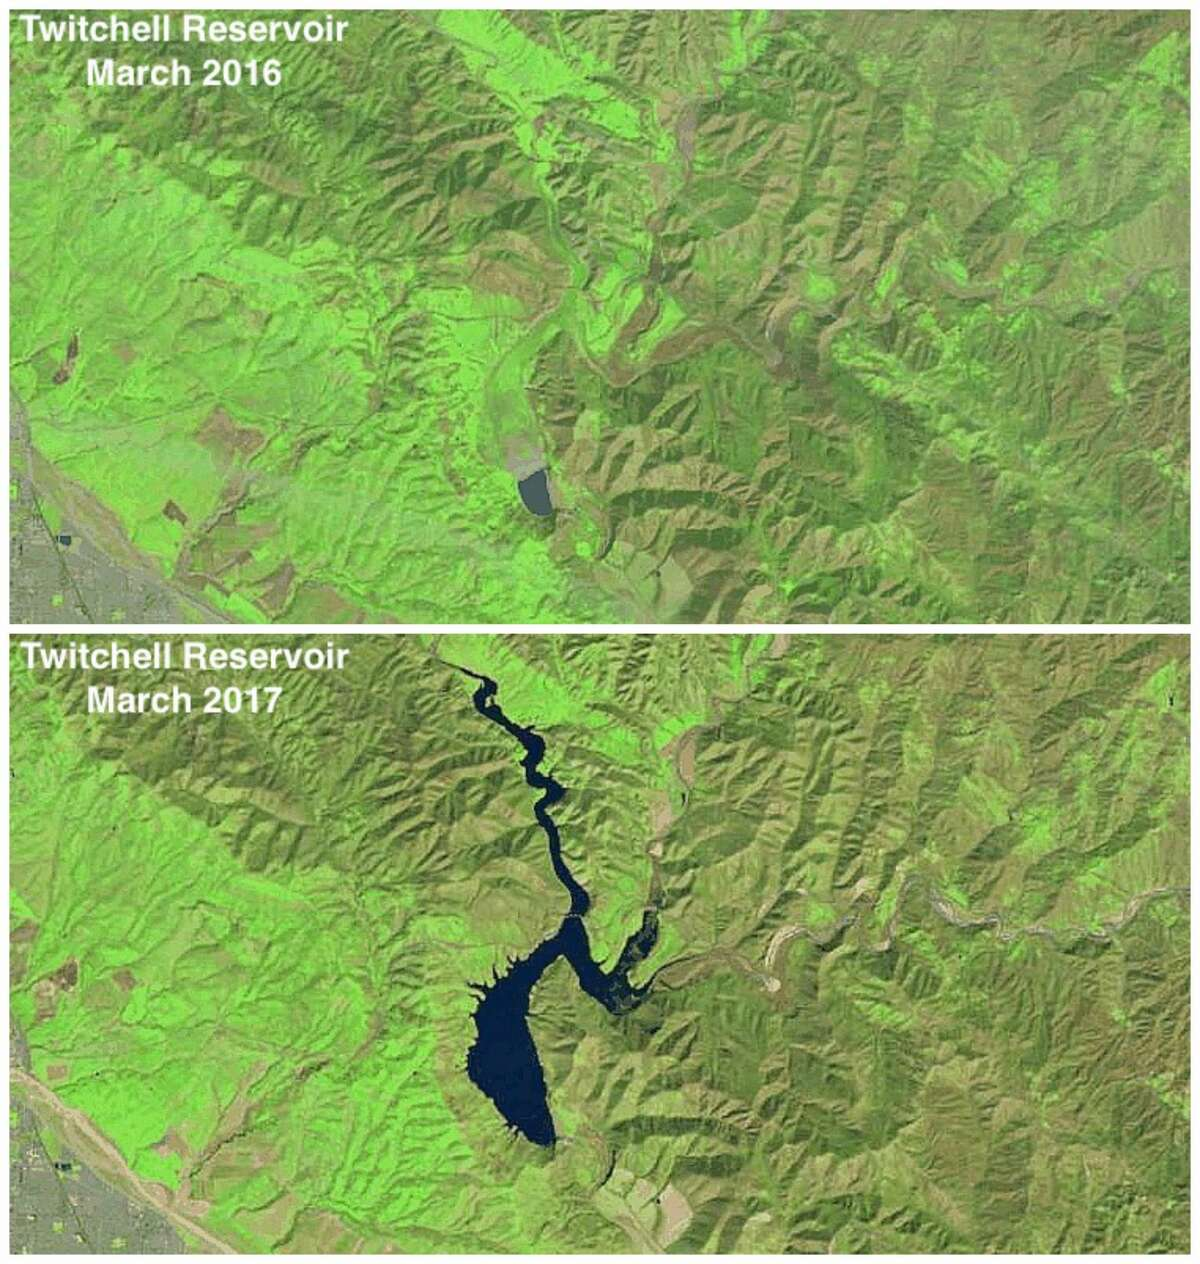 Before and after: Twitchell Reservoir March 2016 vs. March 2017